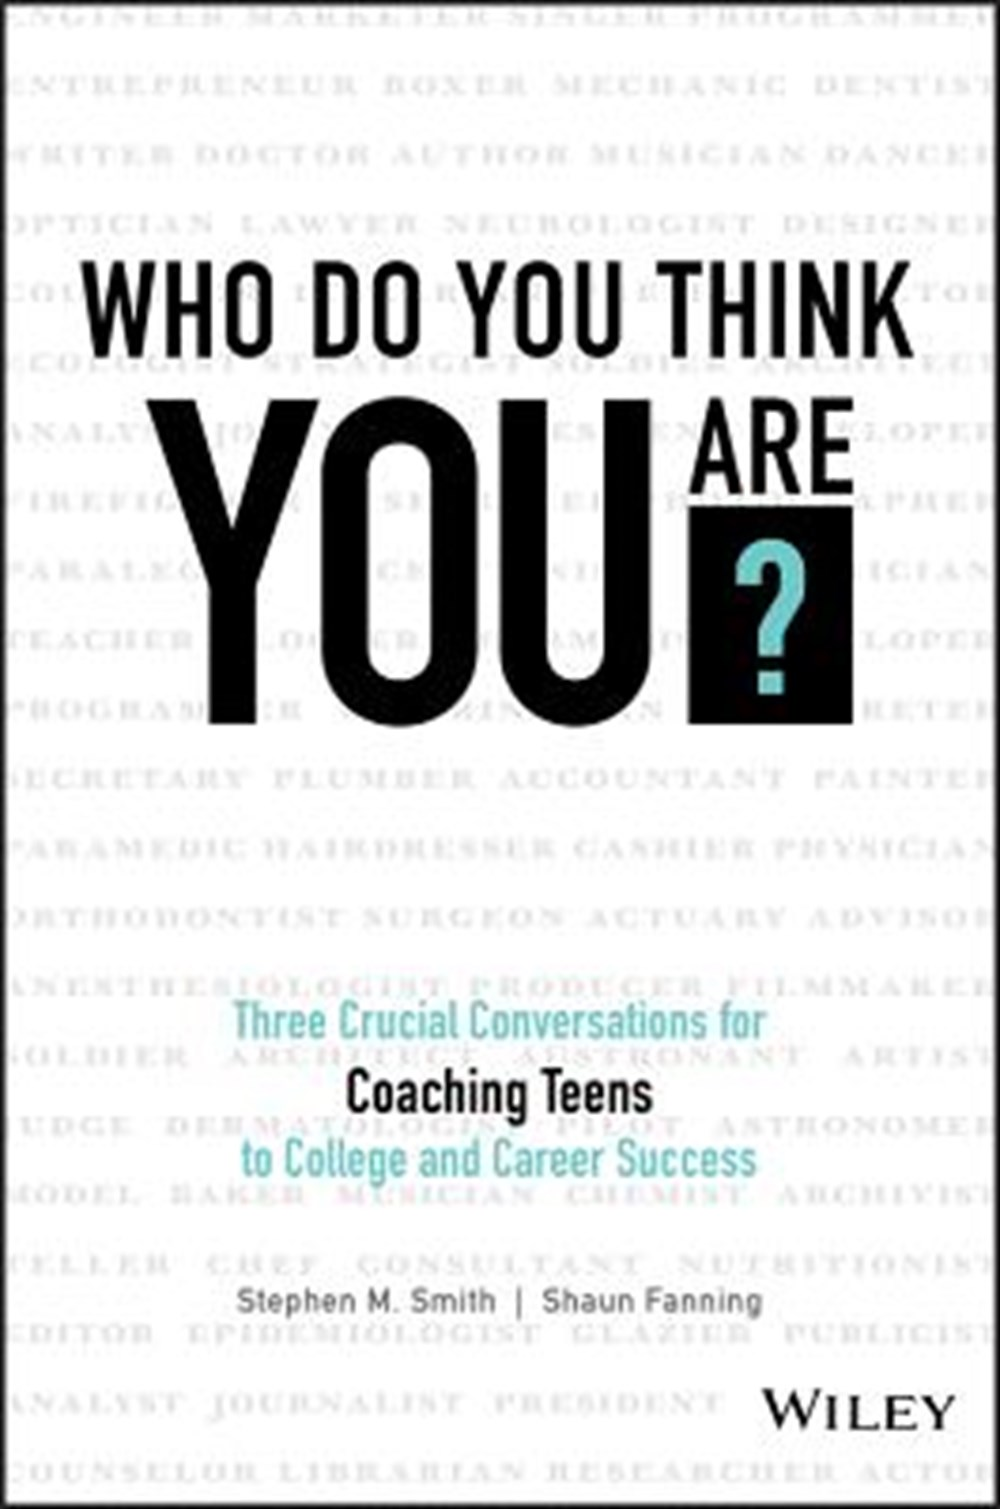 Who Do You Think You Are? Three Crucial Conversations for Coaching Teens to College and Career Succe